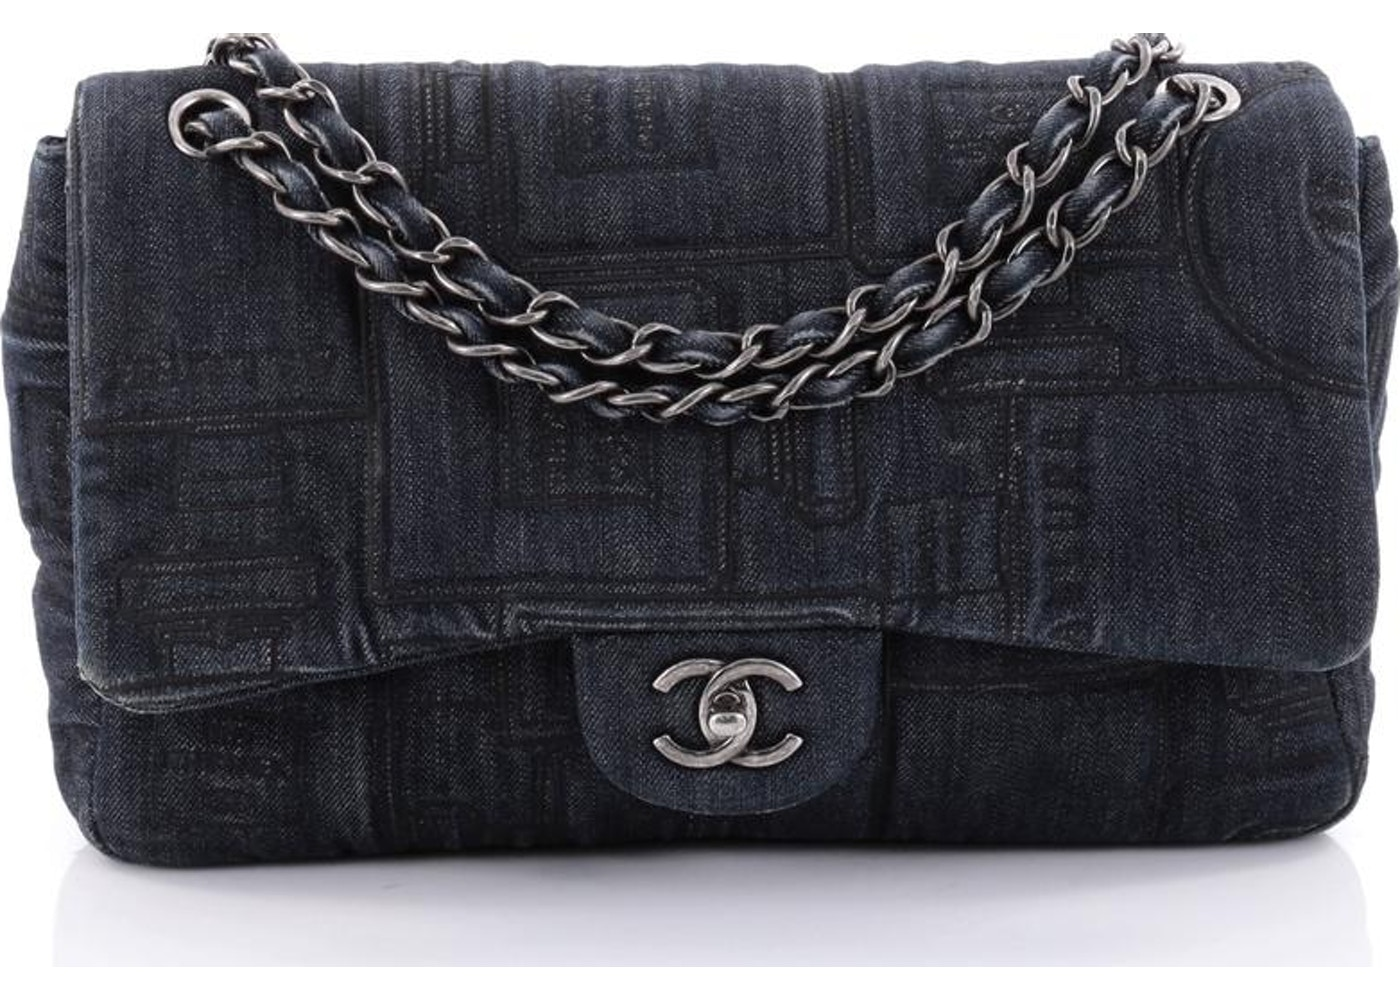 d2563a85aed21a Chanel Classic Flap Bag Embroidered Jumbo Dark Blue. Embroidered Jumbo Dark  Blue